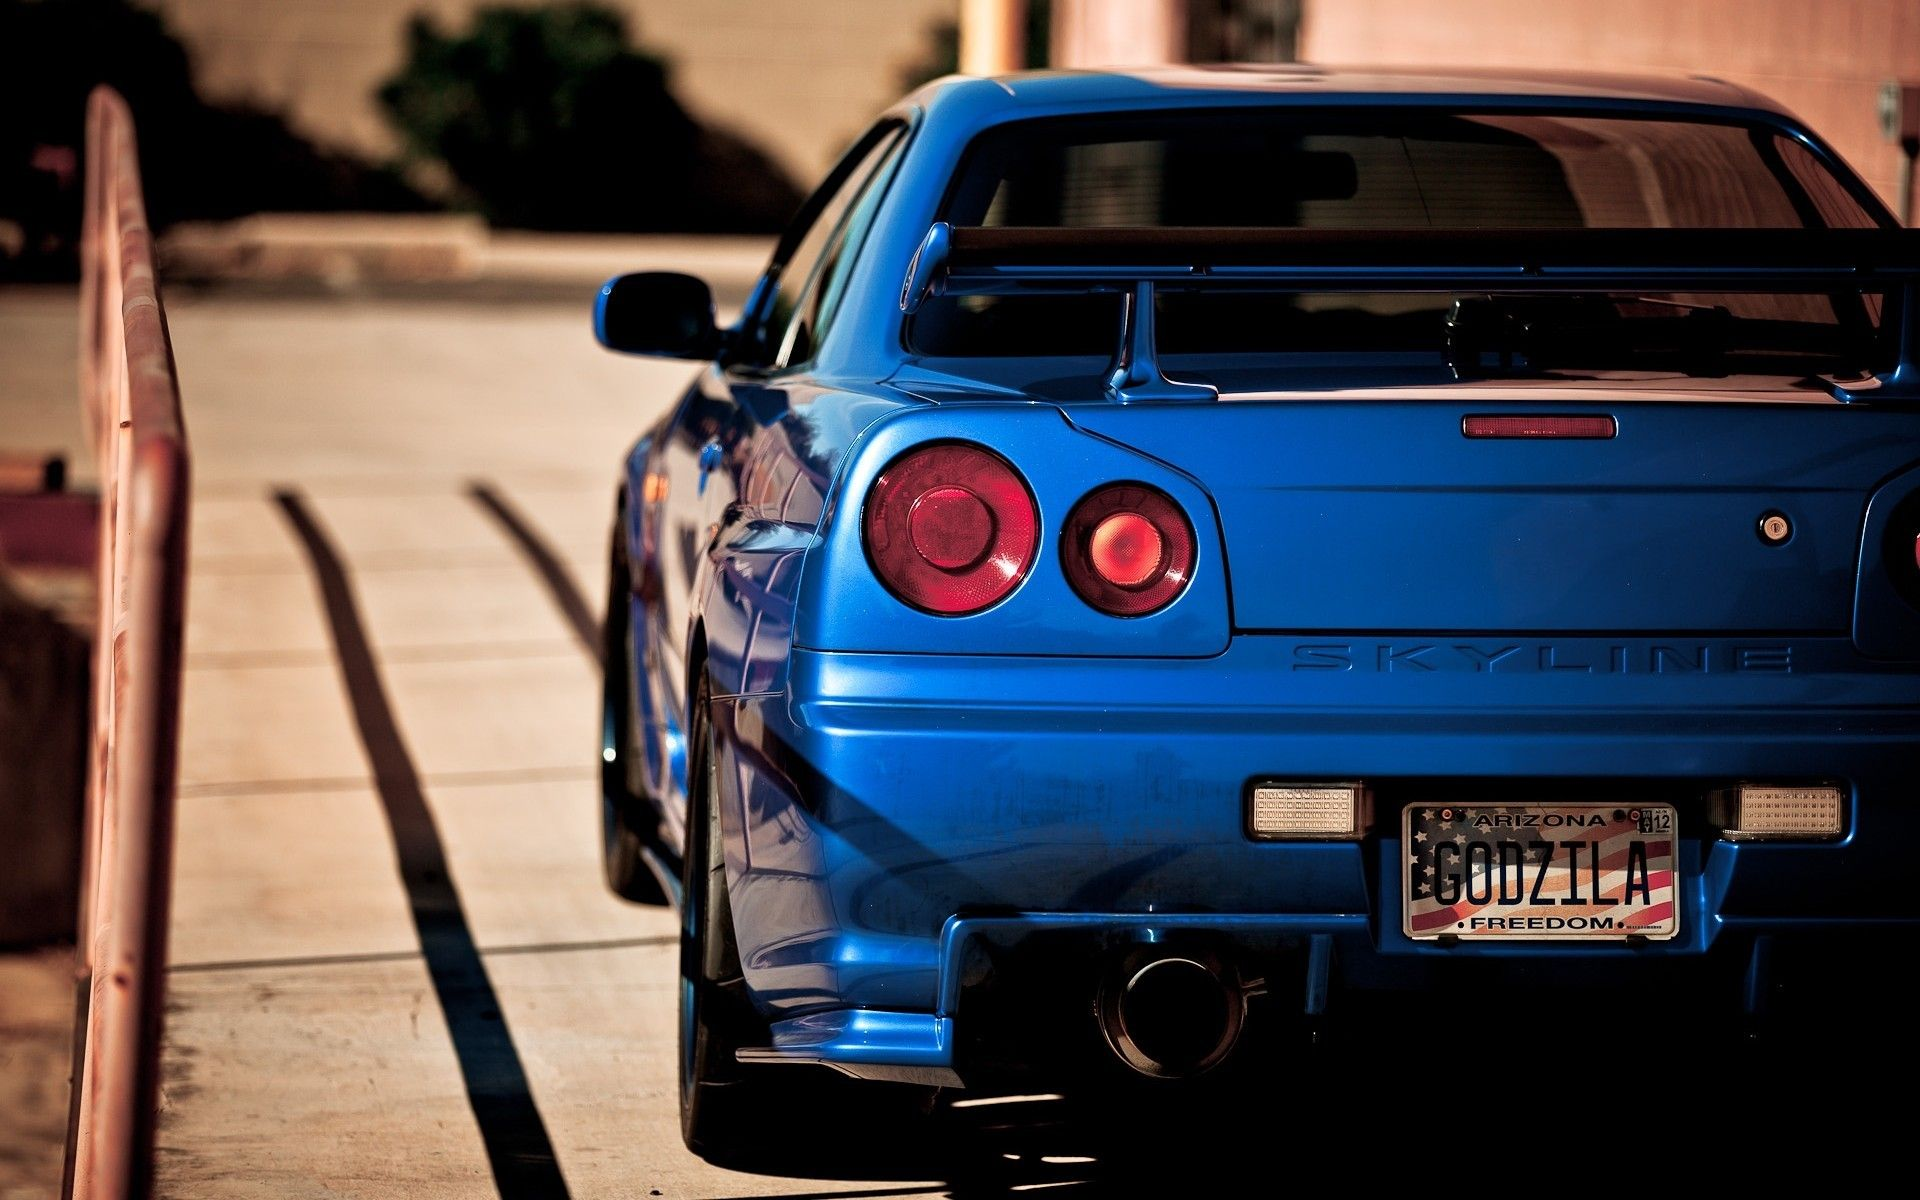 Nissan driving skyline r34 gt r gtr fast 1280x1024 driving skyline r34 gtr fast via www allwallpaper in allwallpaper in pinterest nissan and